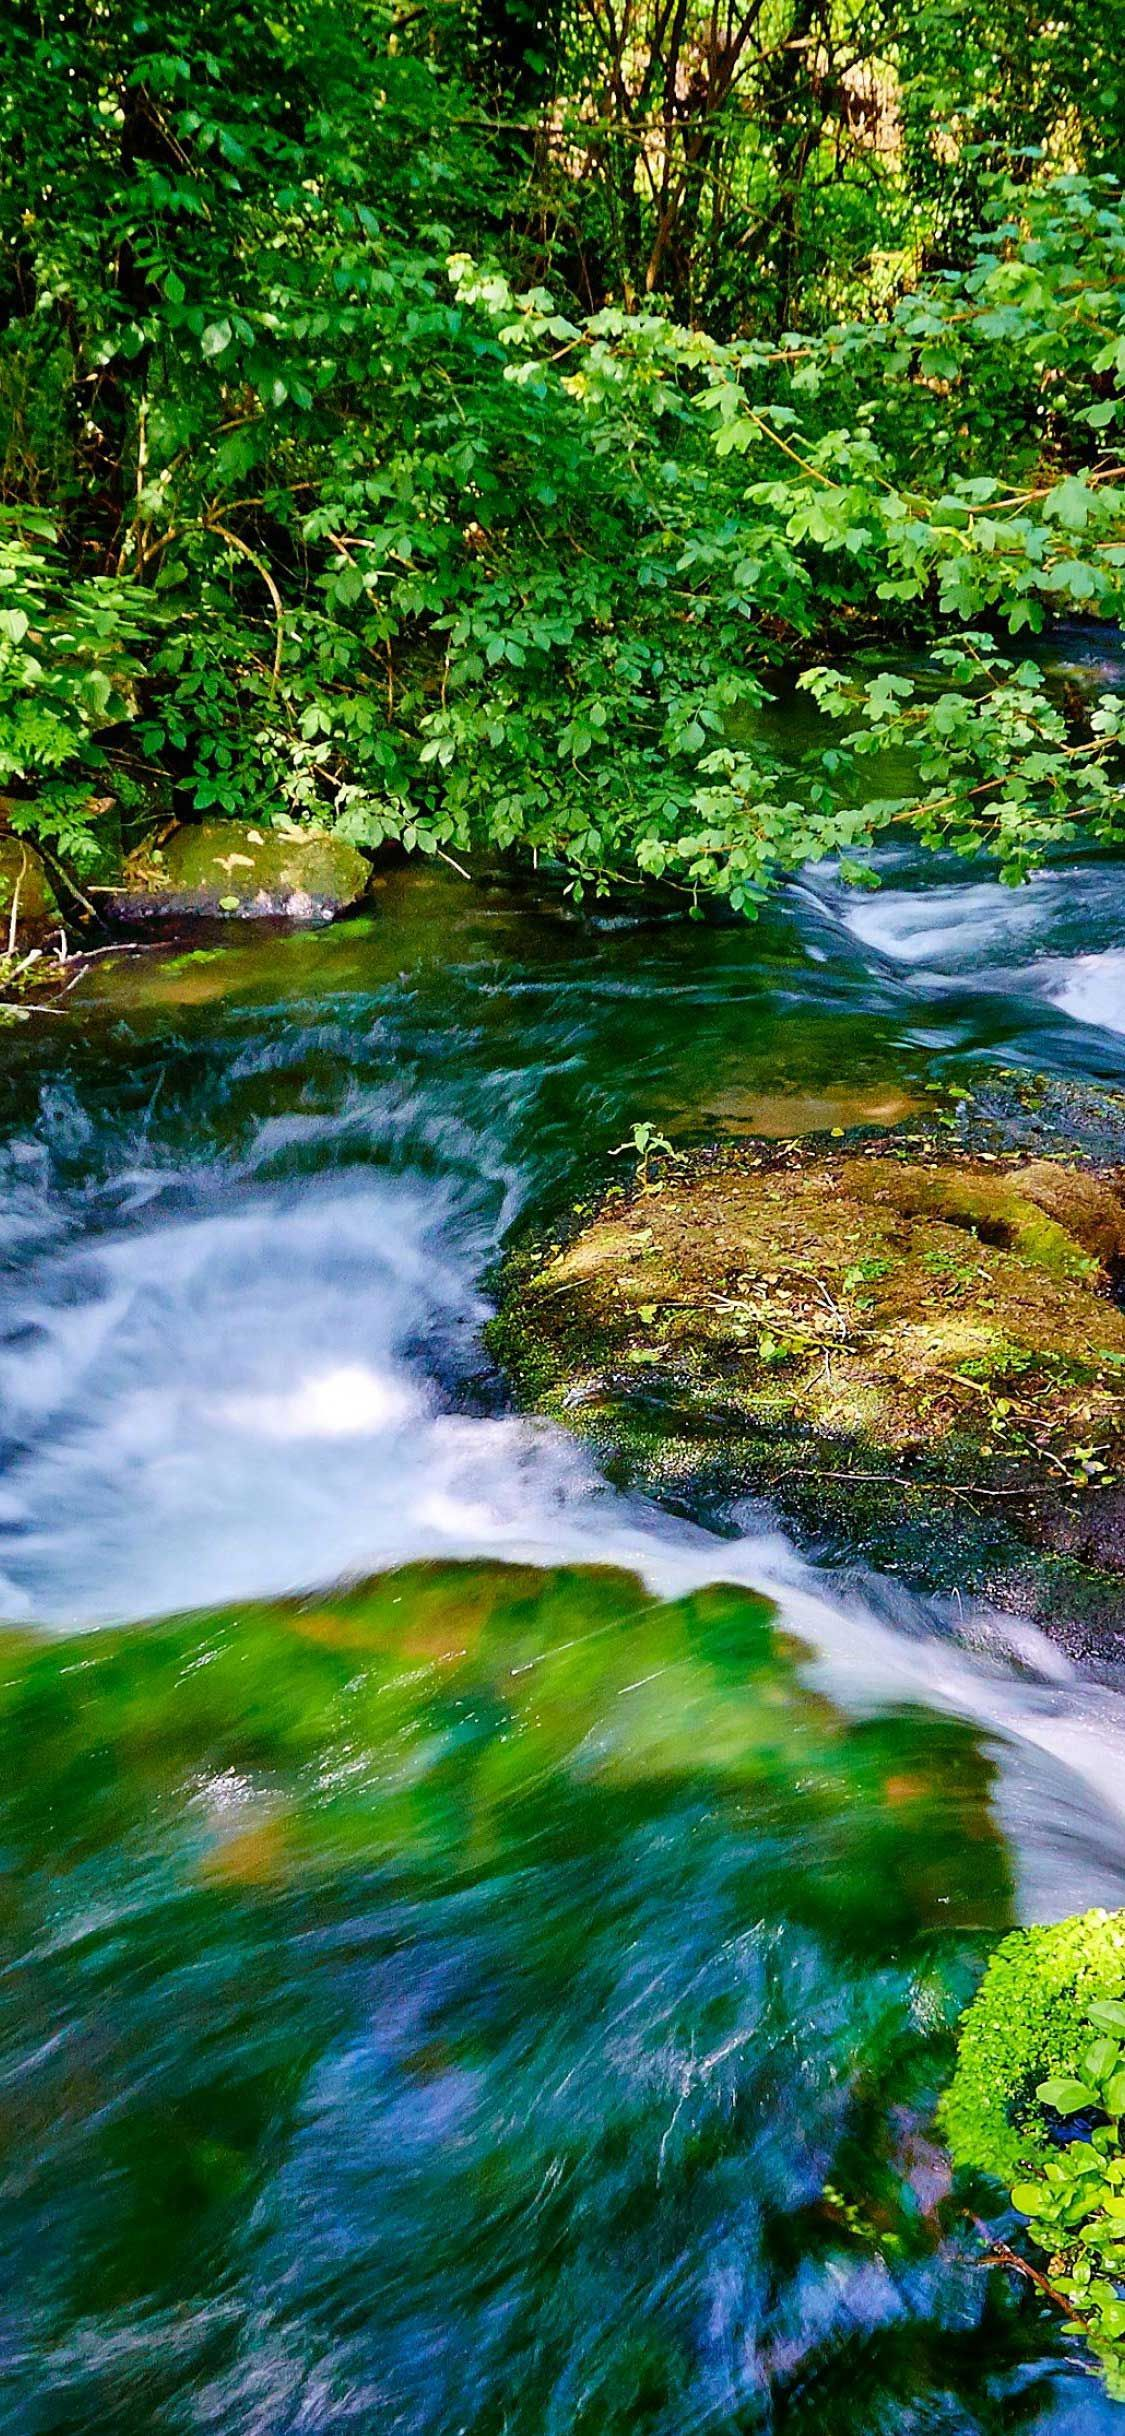 Iphone X Wallpaper Water Stream Forest K Hd In 2020 Best Nature Wallpapers Nature Wallpaper Wallpaper